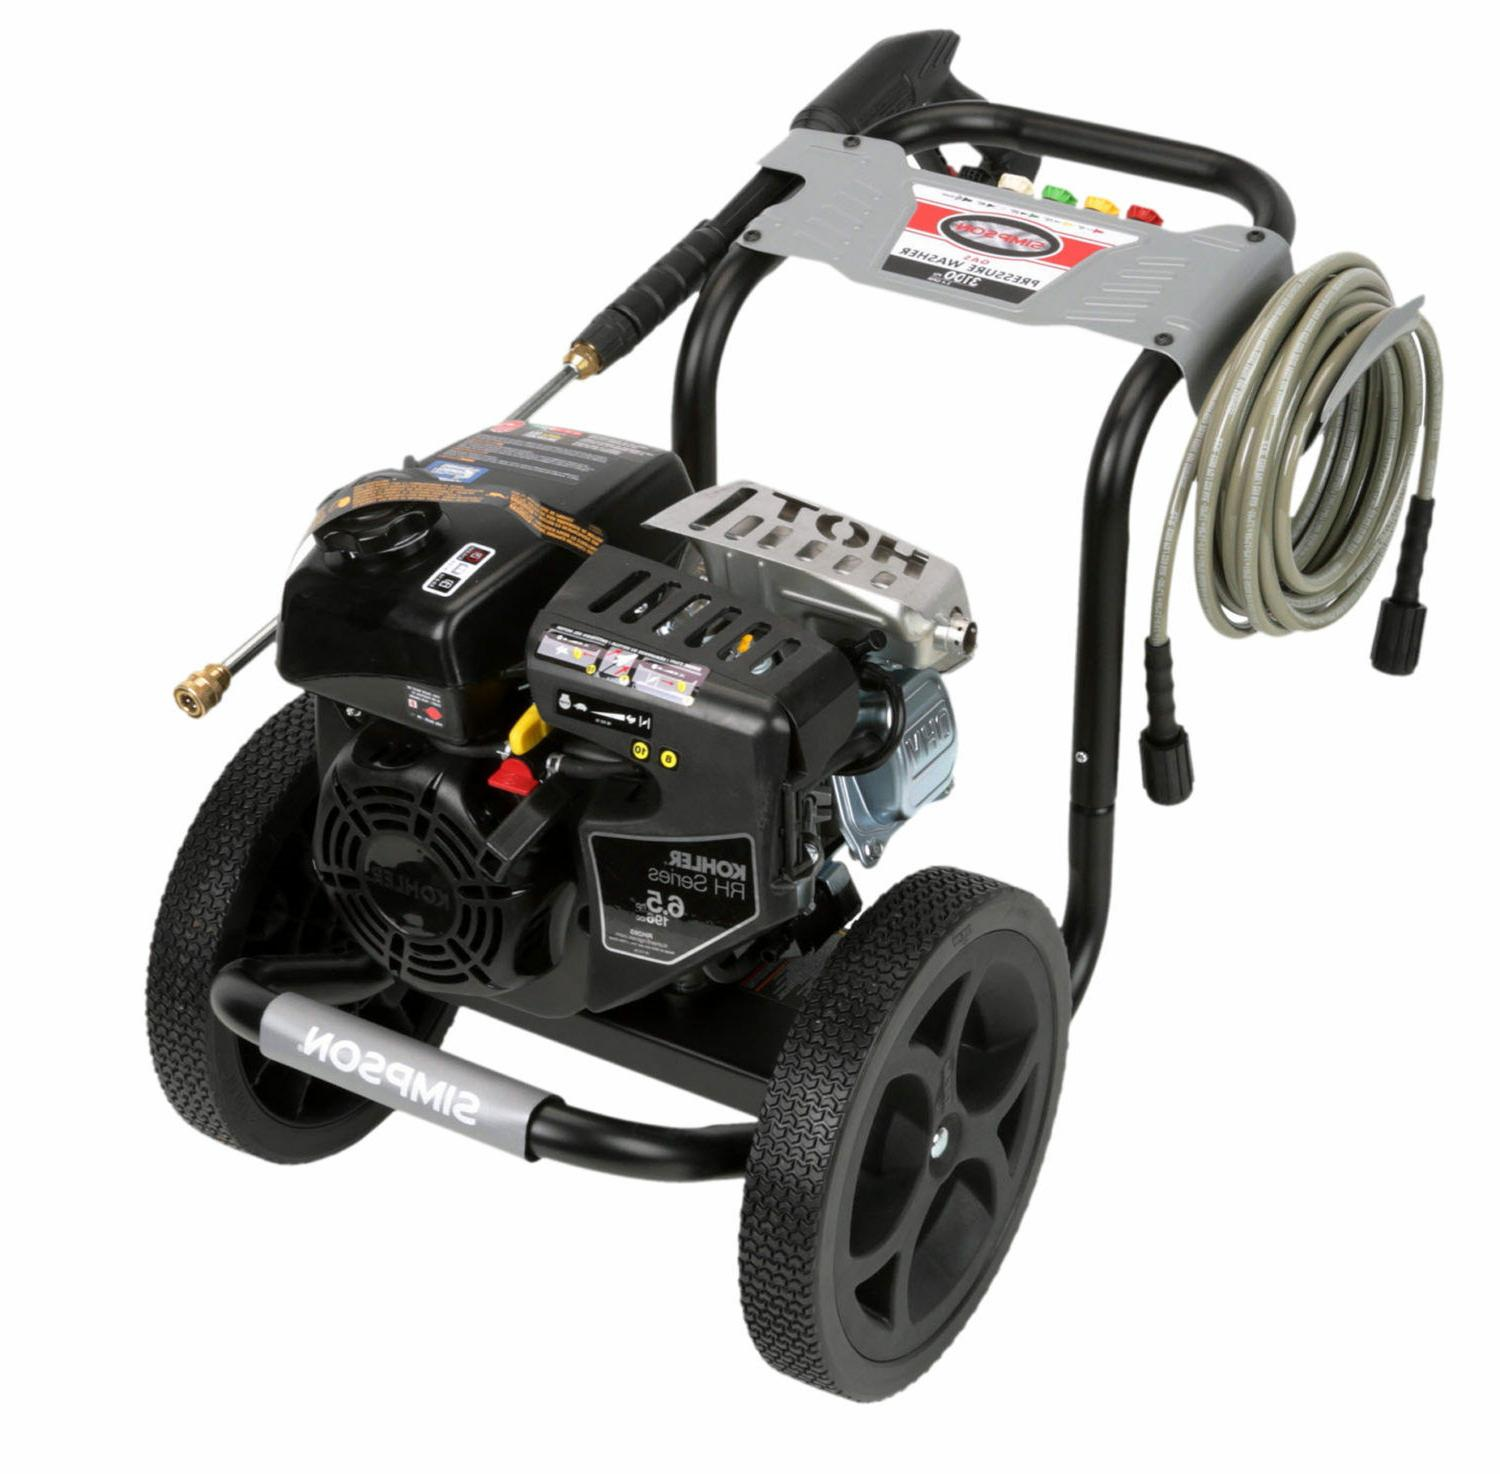 Simpson 3100 @ 2.4 Kohler Cold Pressure Washer MS60763-S